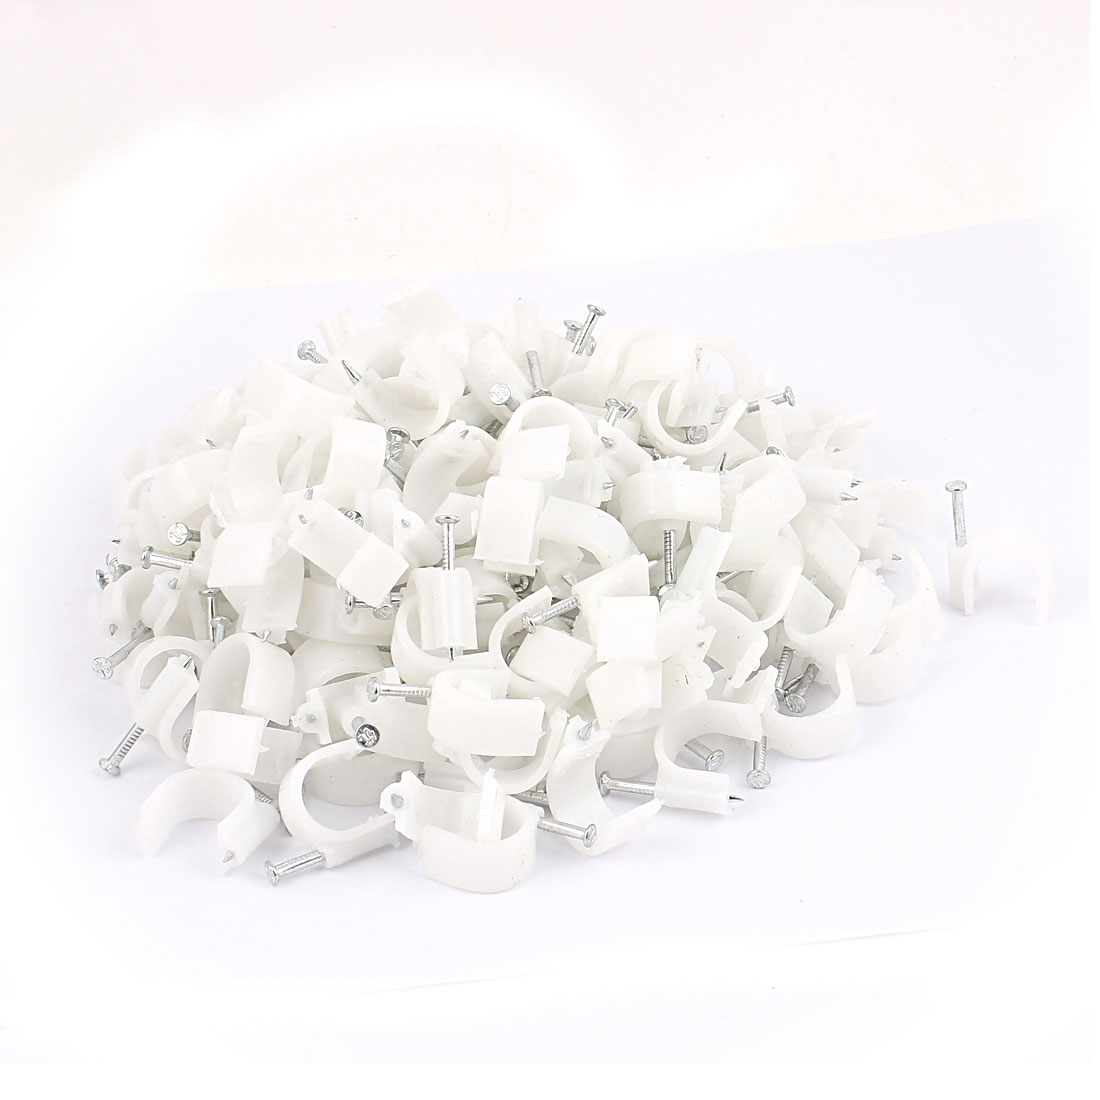 Wall Mount 16mm Dia Electric Cable Circle Nail Clips Fastener 200 Pcs